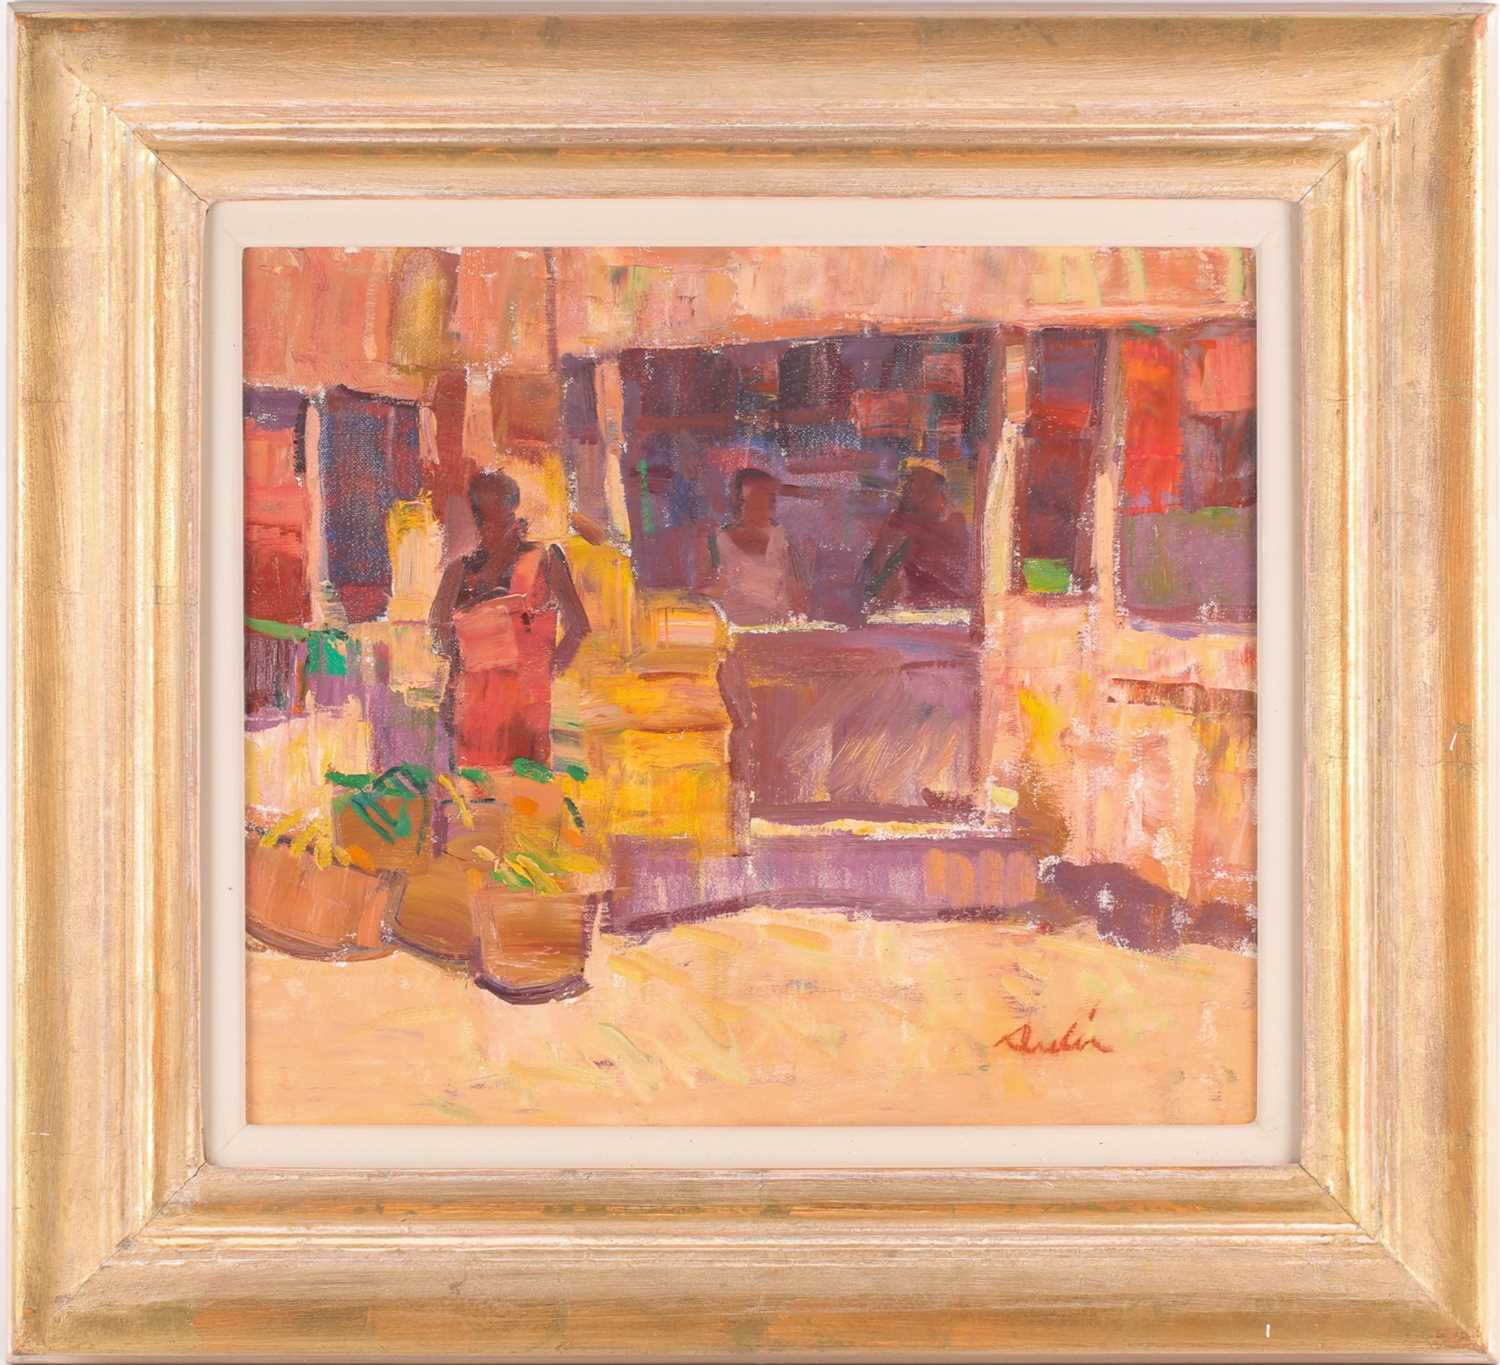 George Devlin R.S.W., R. S.I. (Scottish. B. 1937), Traders Bangalore, oil on canvas, signed lower